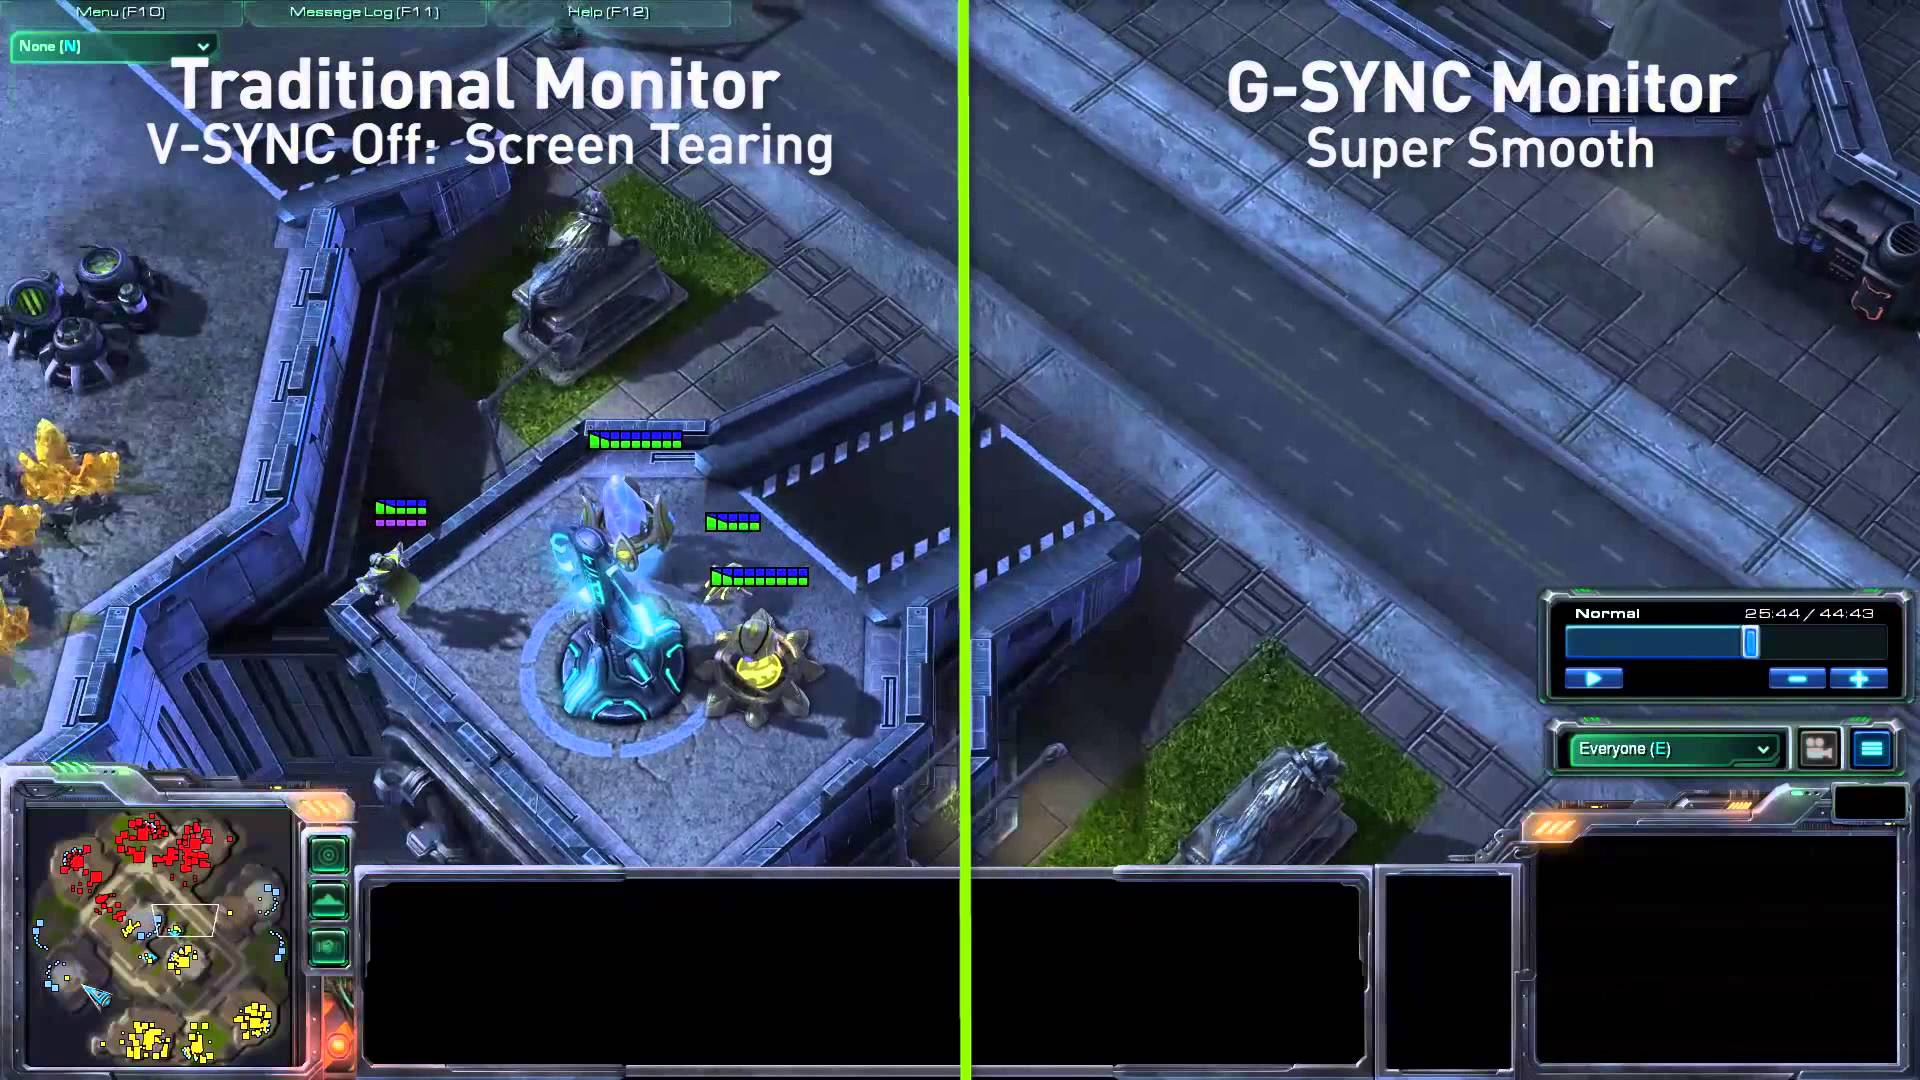 gsync3 - What is G-Sync and how to use it properly?